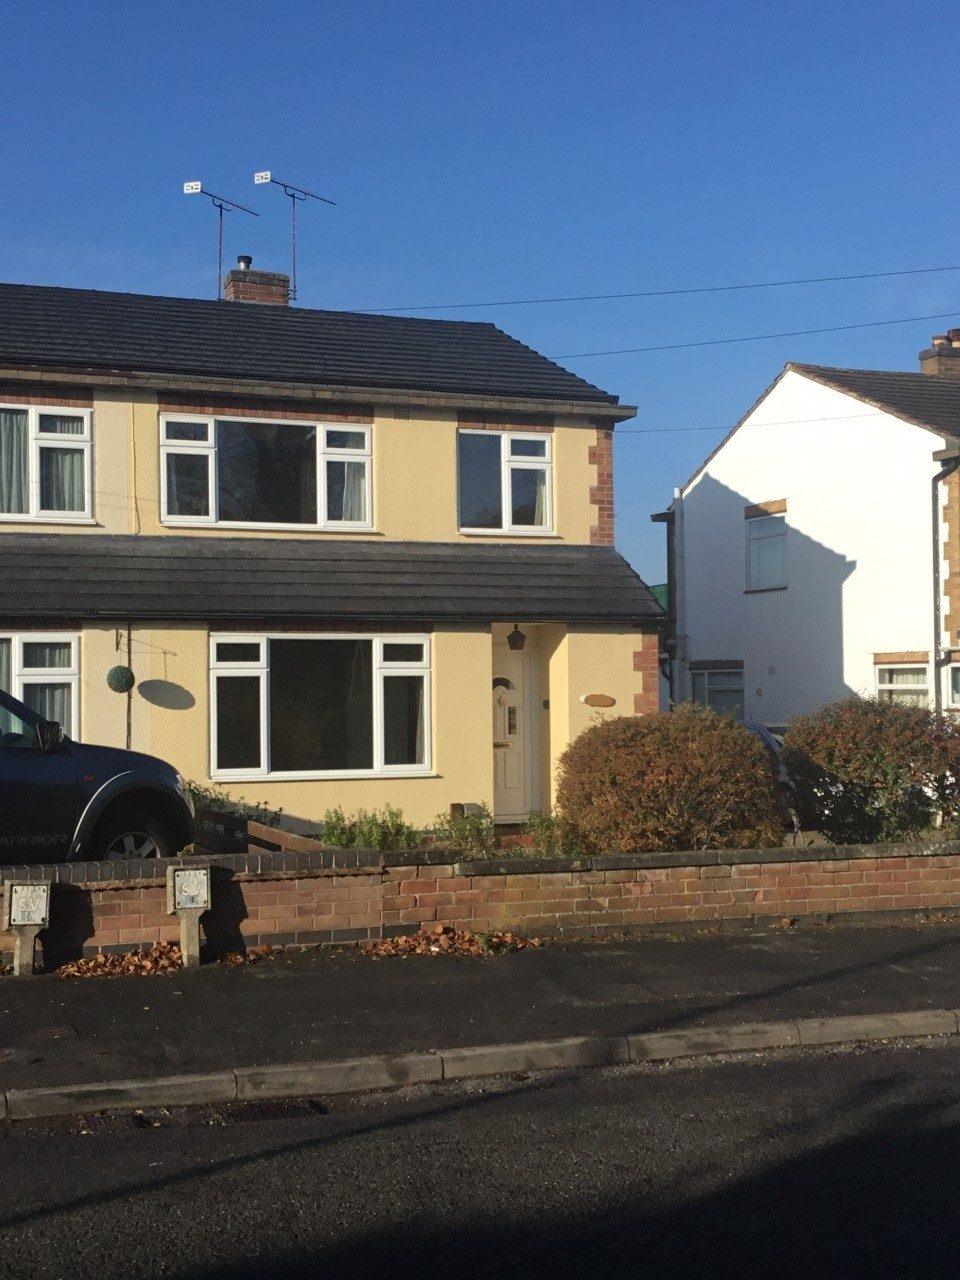 3 Bedroom Semi Detached House To Rent Rose Gardens: Three Bedroom Semi Detached House To Let In Warwickshire